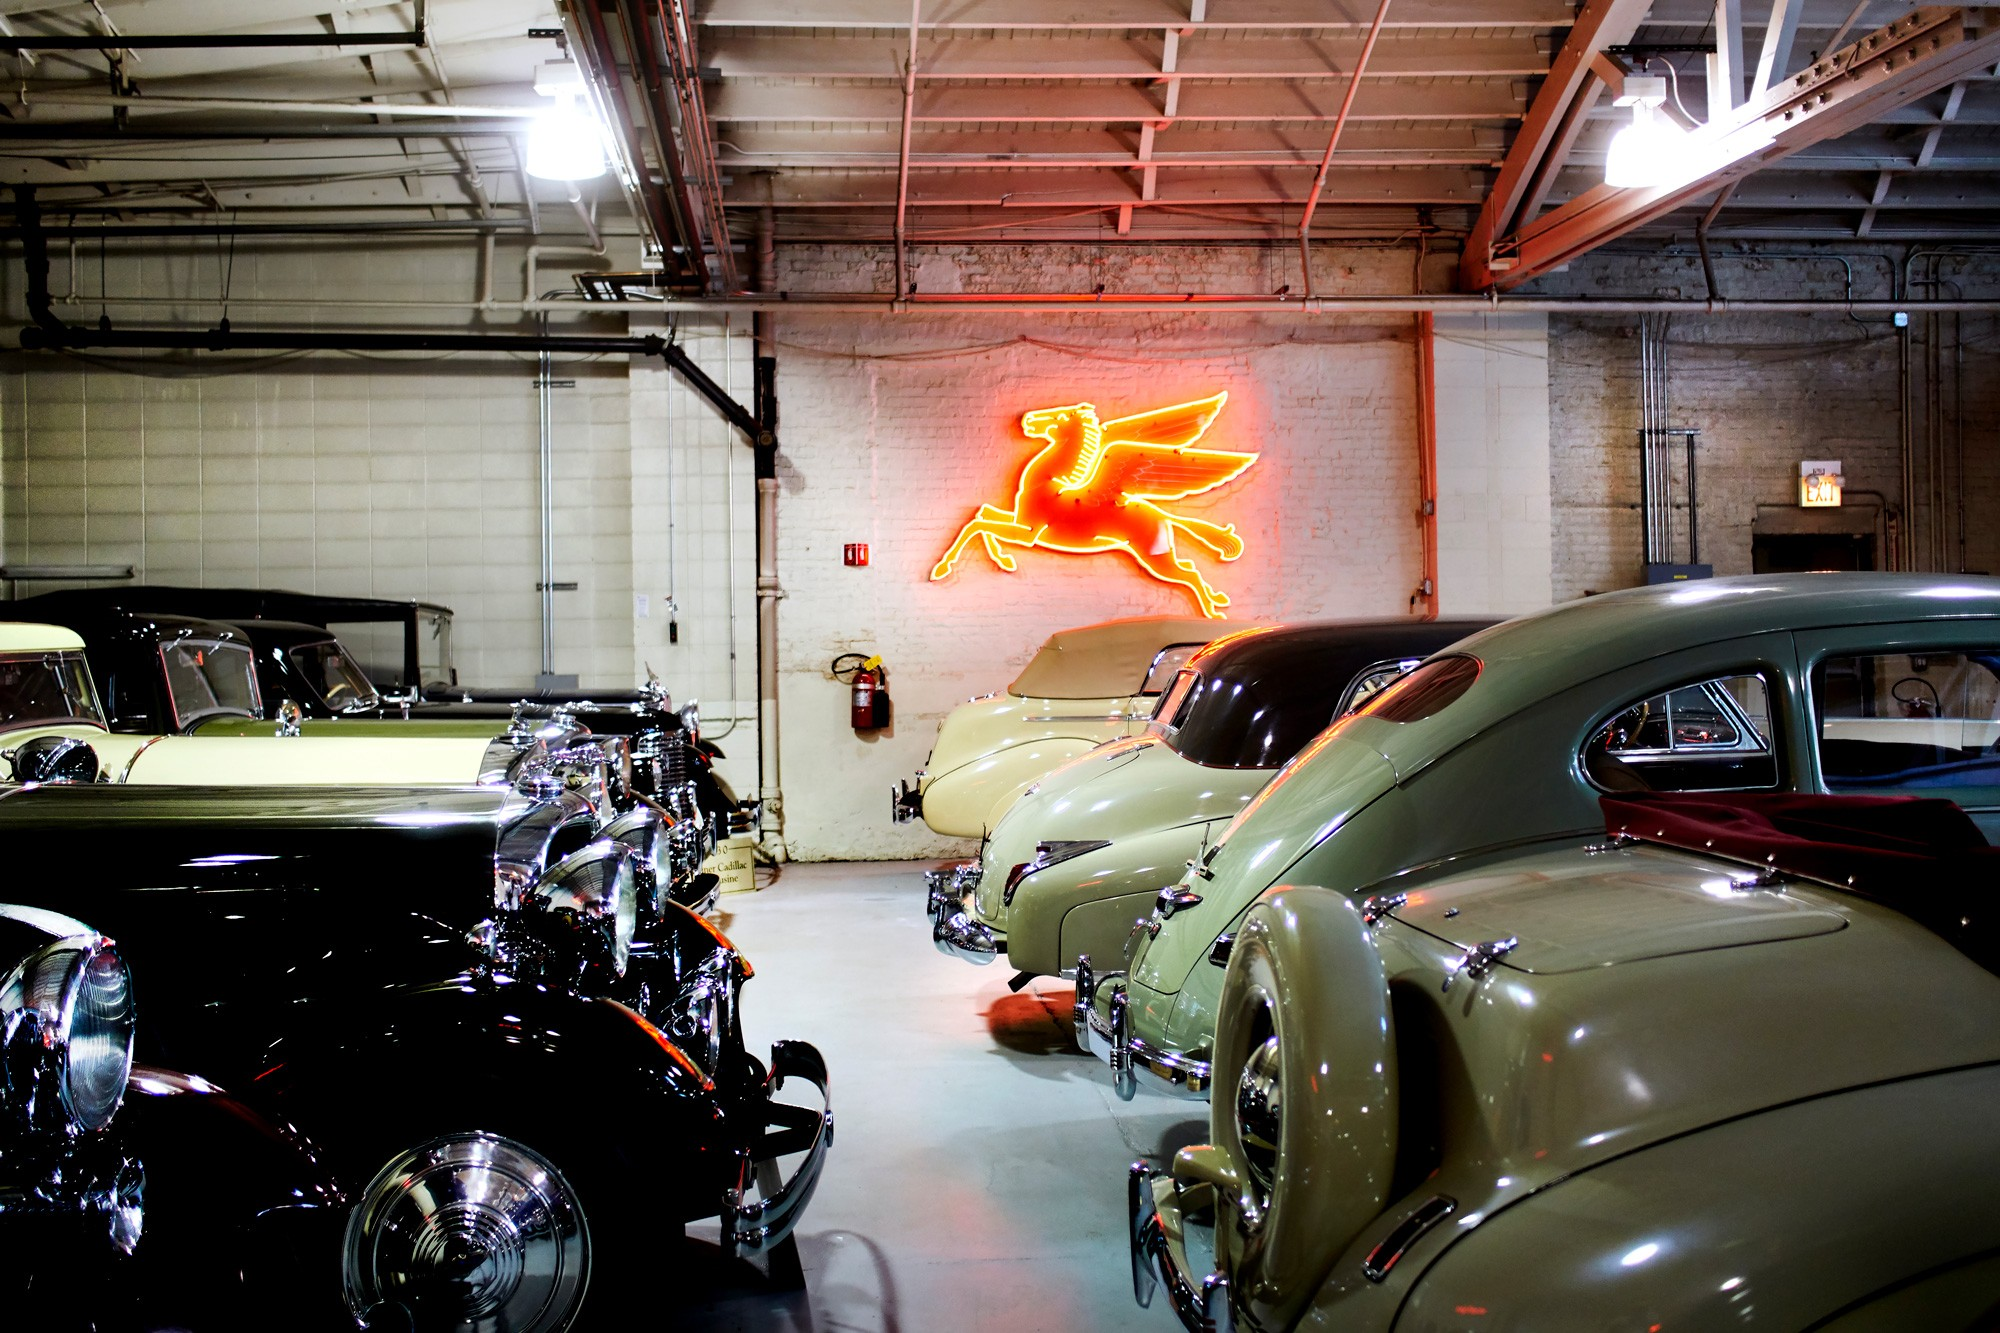 The Richard H. Driehaus Collection at Chicago Vintage Motor Carriage ...